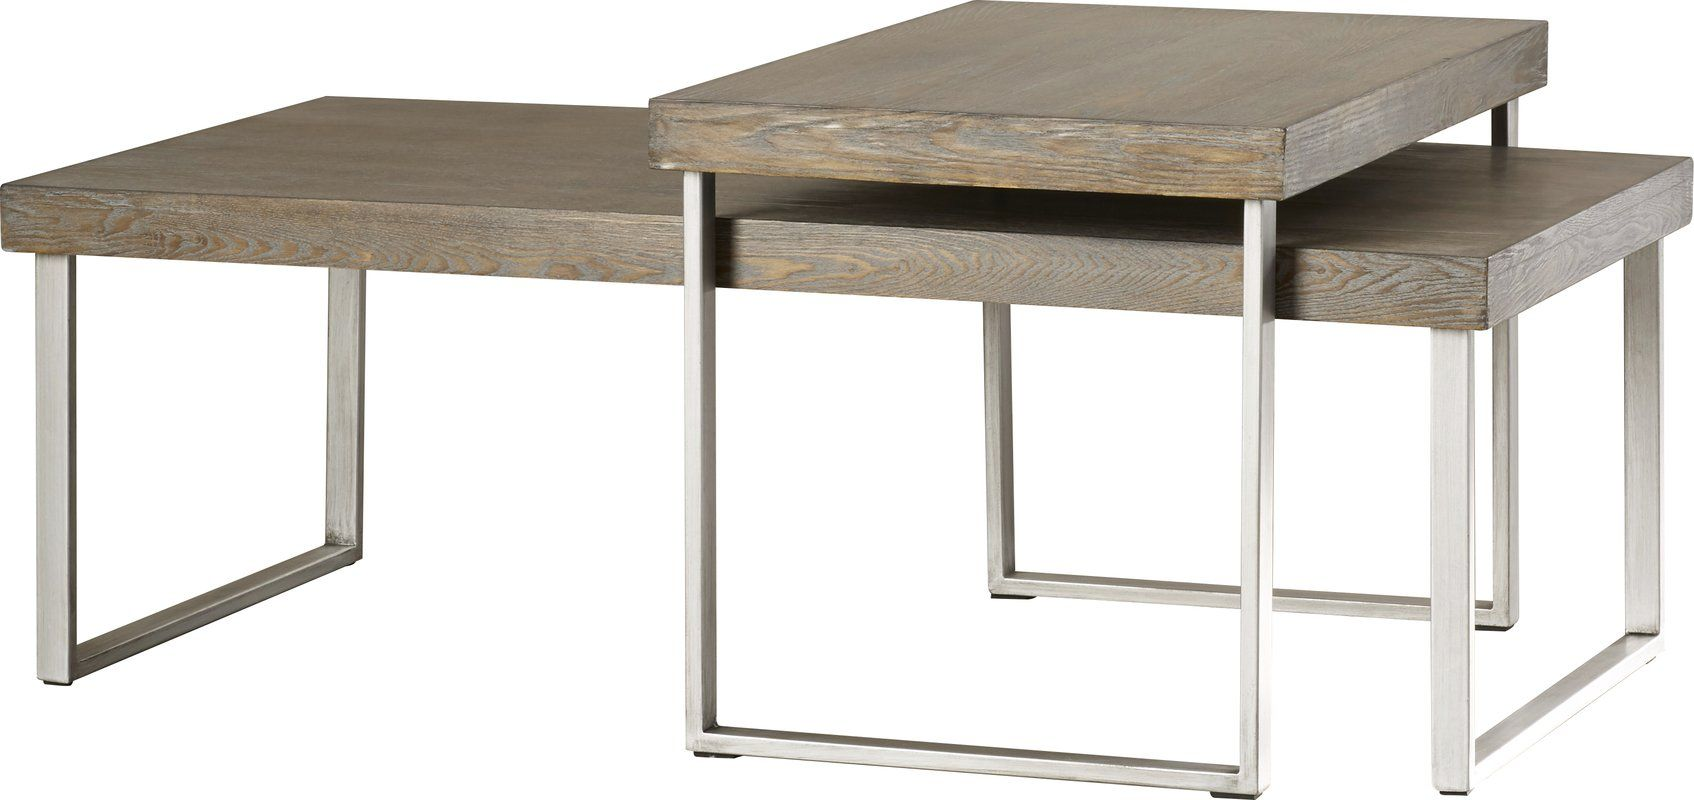 Stacy 2 Piece Nested Coffee Table Set Reviews Joss Main Coffee Table Small Space Coffee Table Nesting Coffee Tables [ 800 x 1694 Pixel ]